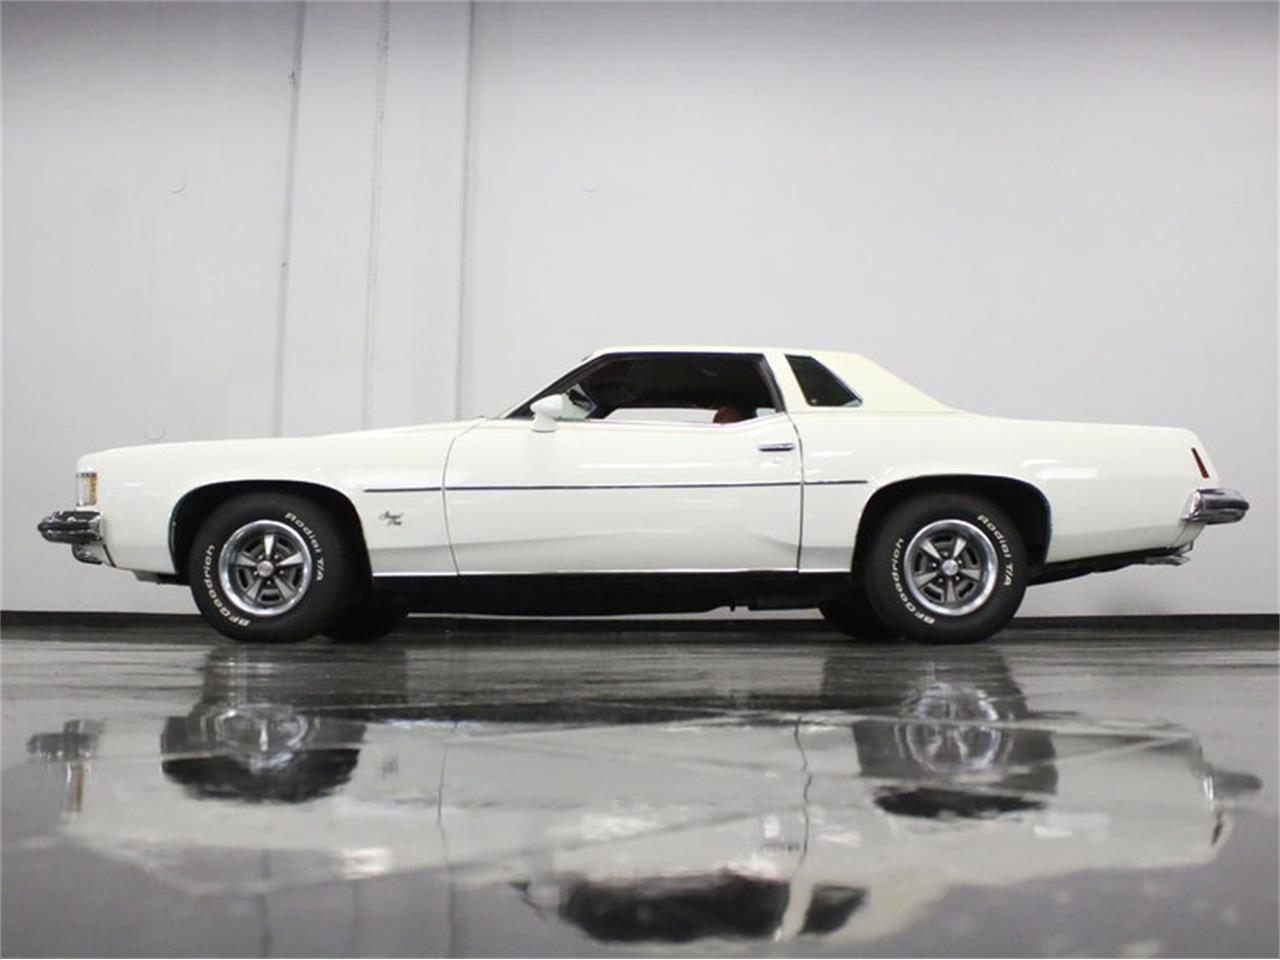 Large Picture of '73 Pontiac Grand Prix Model J - $13,995.00 Offered by Streetside Classics - Dallas / Fort Worth - L2N9